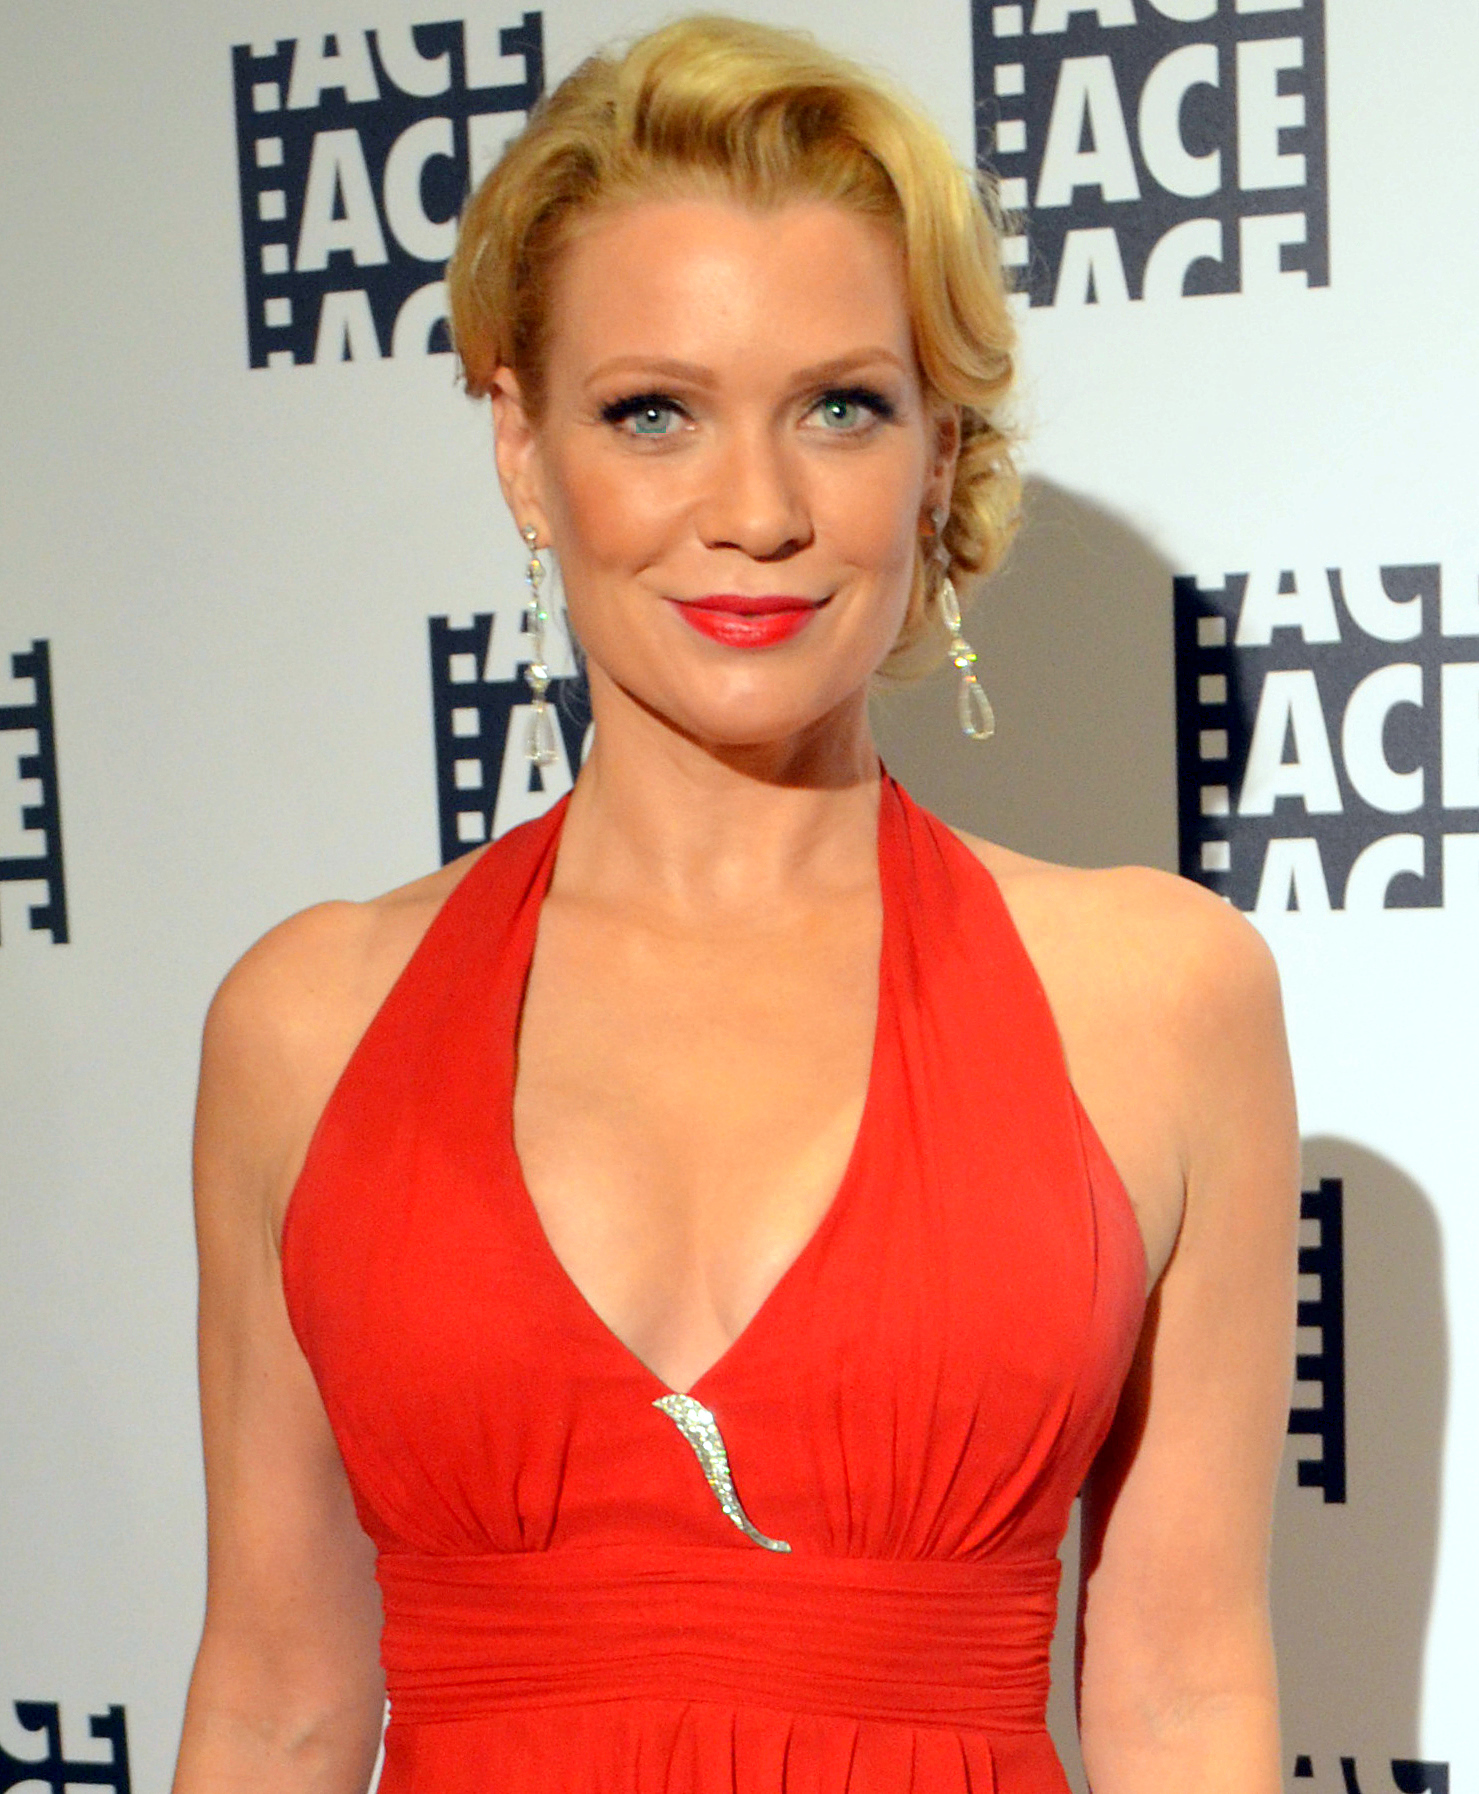 Laurie Holden earned a  million dollar salary - leaving the net worth at 2 million in 2018